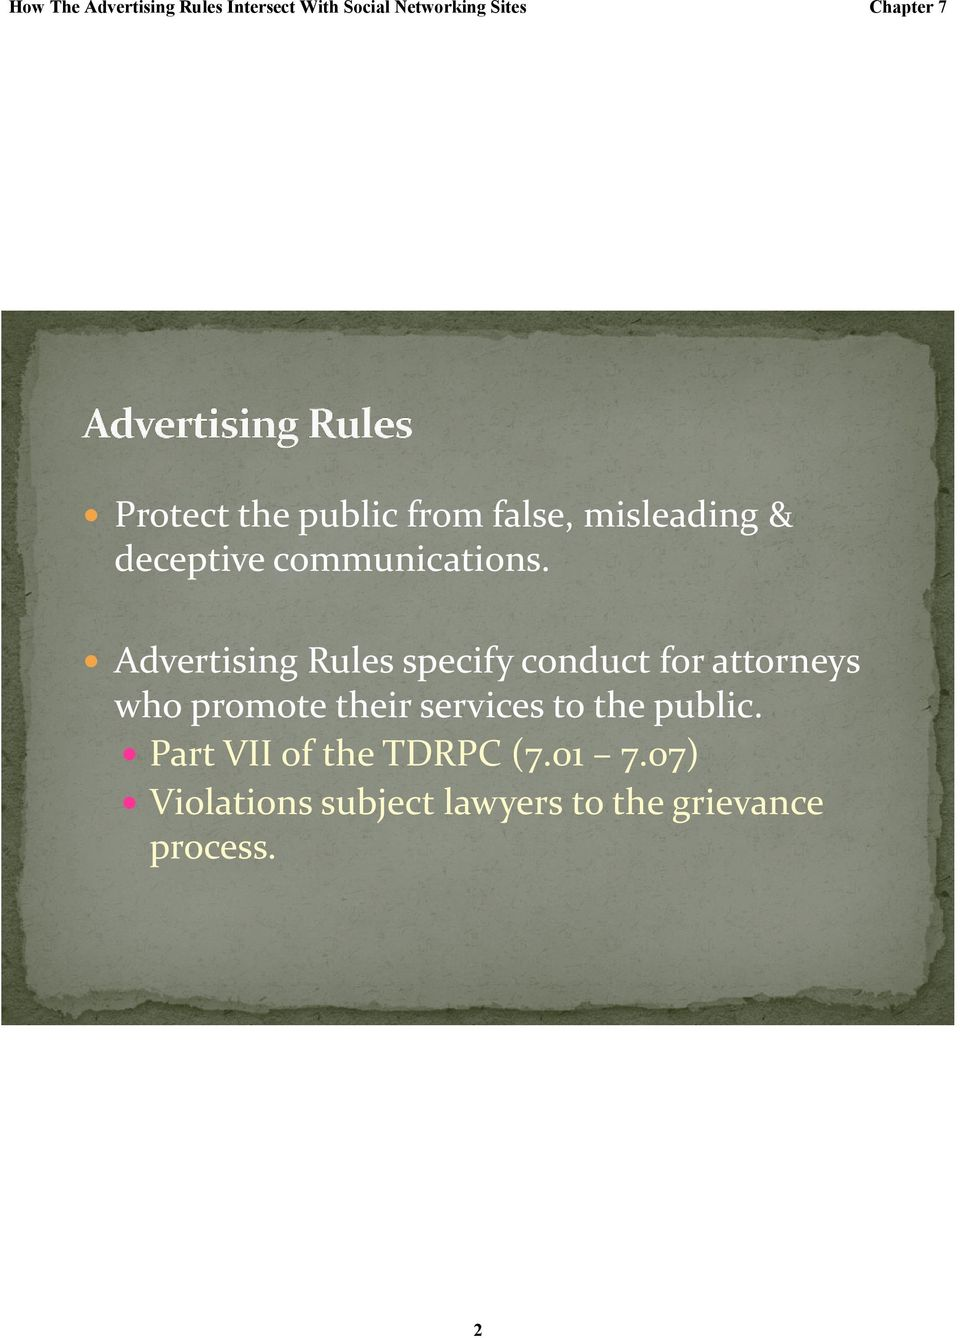 Advertising Rules specify conduct for attorneys who promote